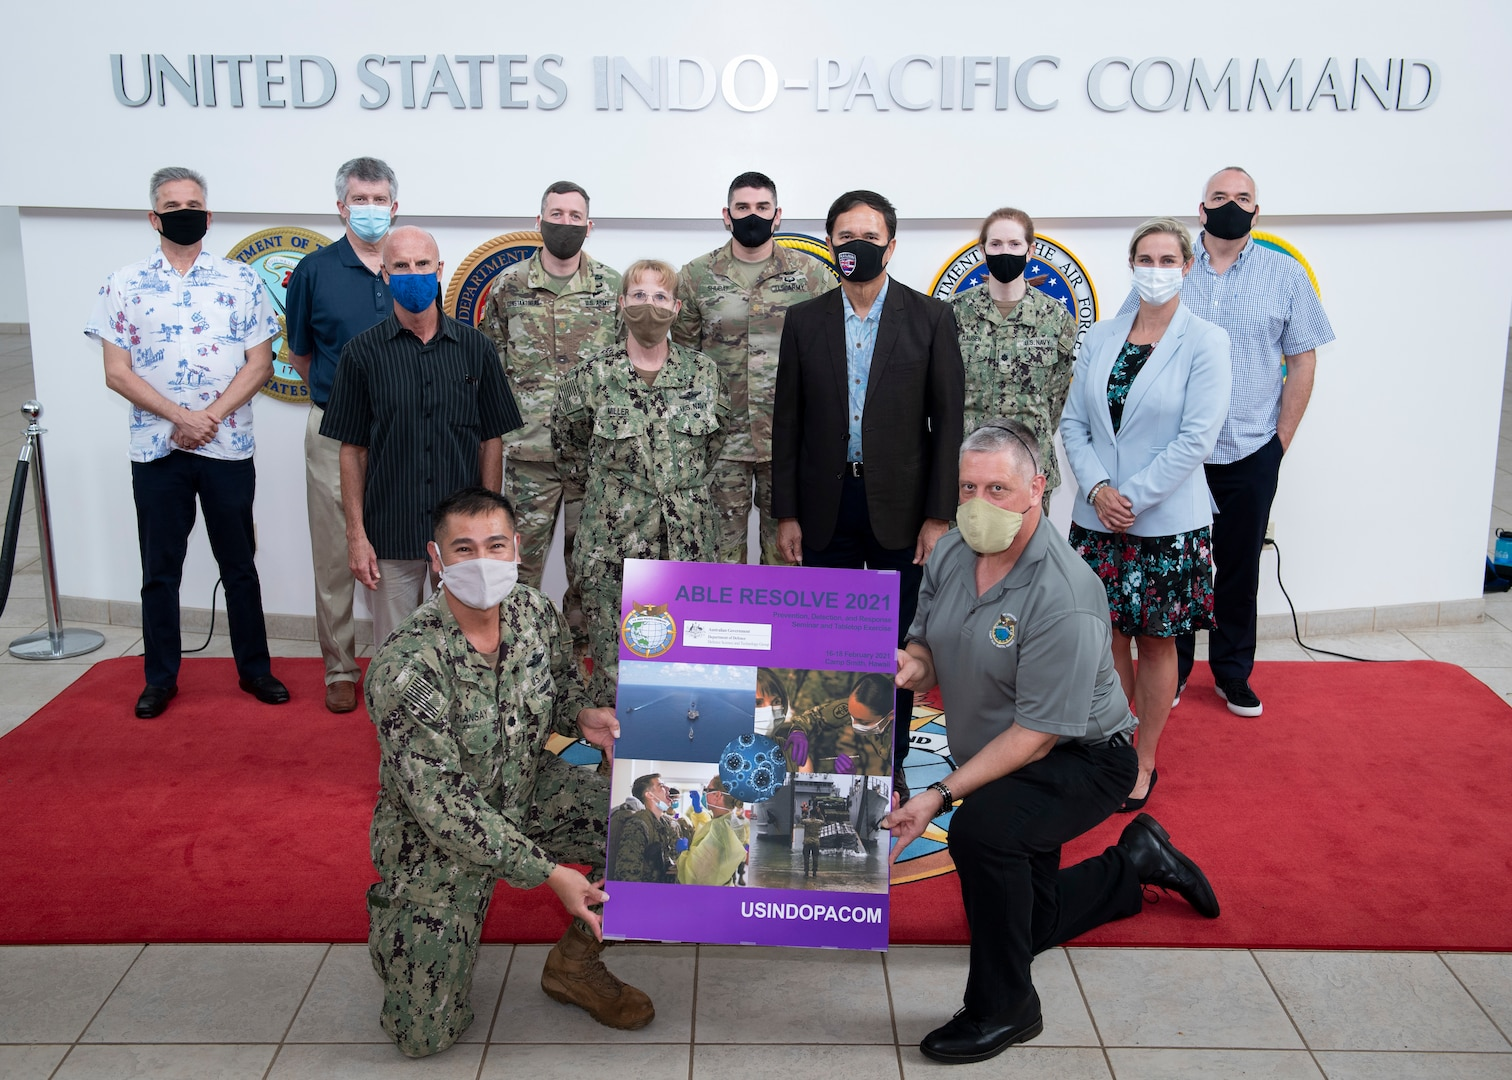 Participants of Exercise Able Resolve pose for a group photo Feb. 18, 2021, at the U.S. Indo-Pacific Command headquarters on Camp Smith, Hawaii. The exercise focused on biological-threat surveillance decision support and knowledge management.